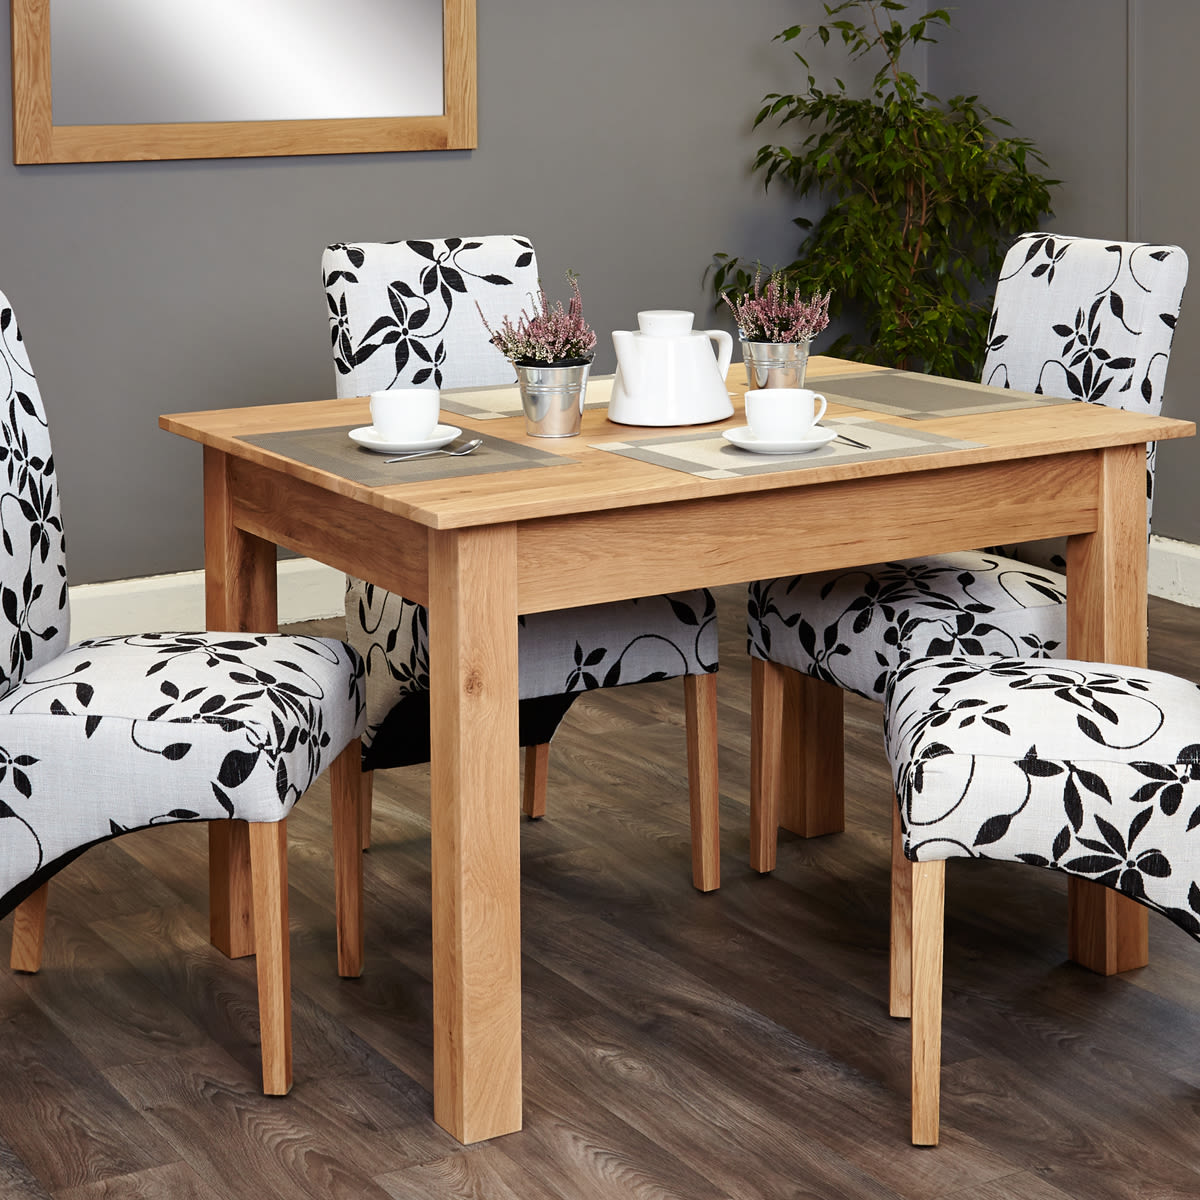 mobel oak 4 seat dining table and 4 upholstered chairs was 829 00 now 699 00 wooden furniture store